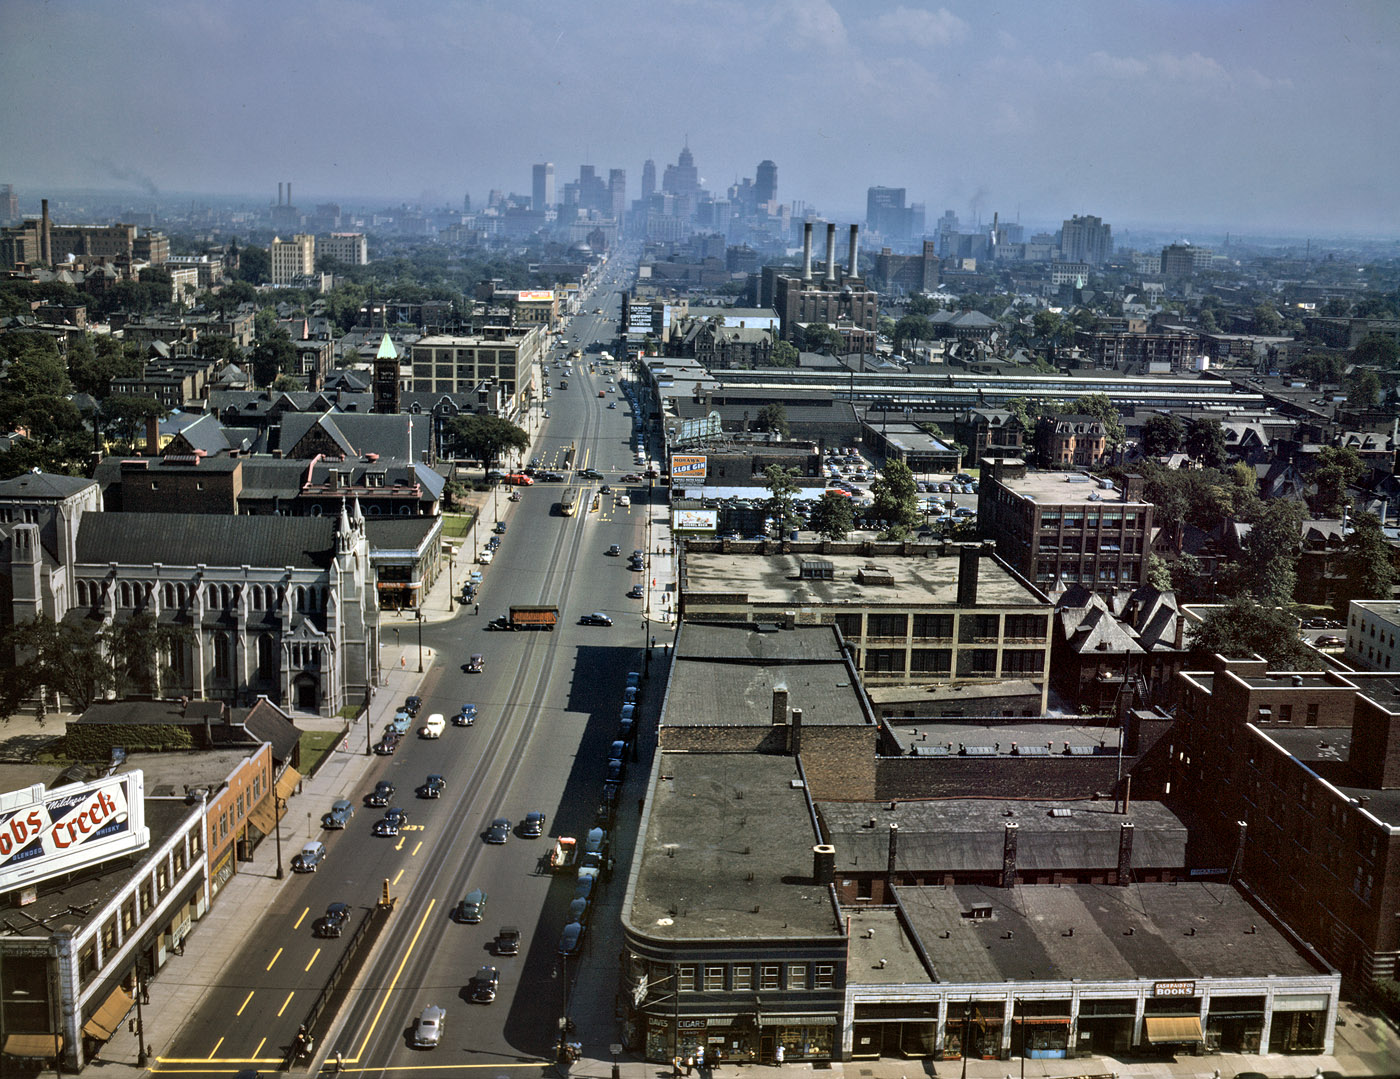 American manufacturing cities like Detroit (pictured here in 1942) have been decimated by race-to-the-bottom policies.